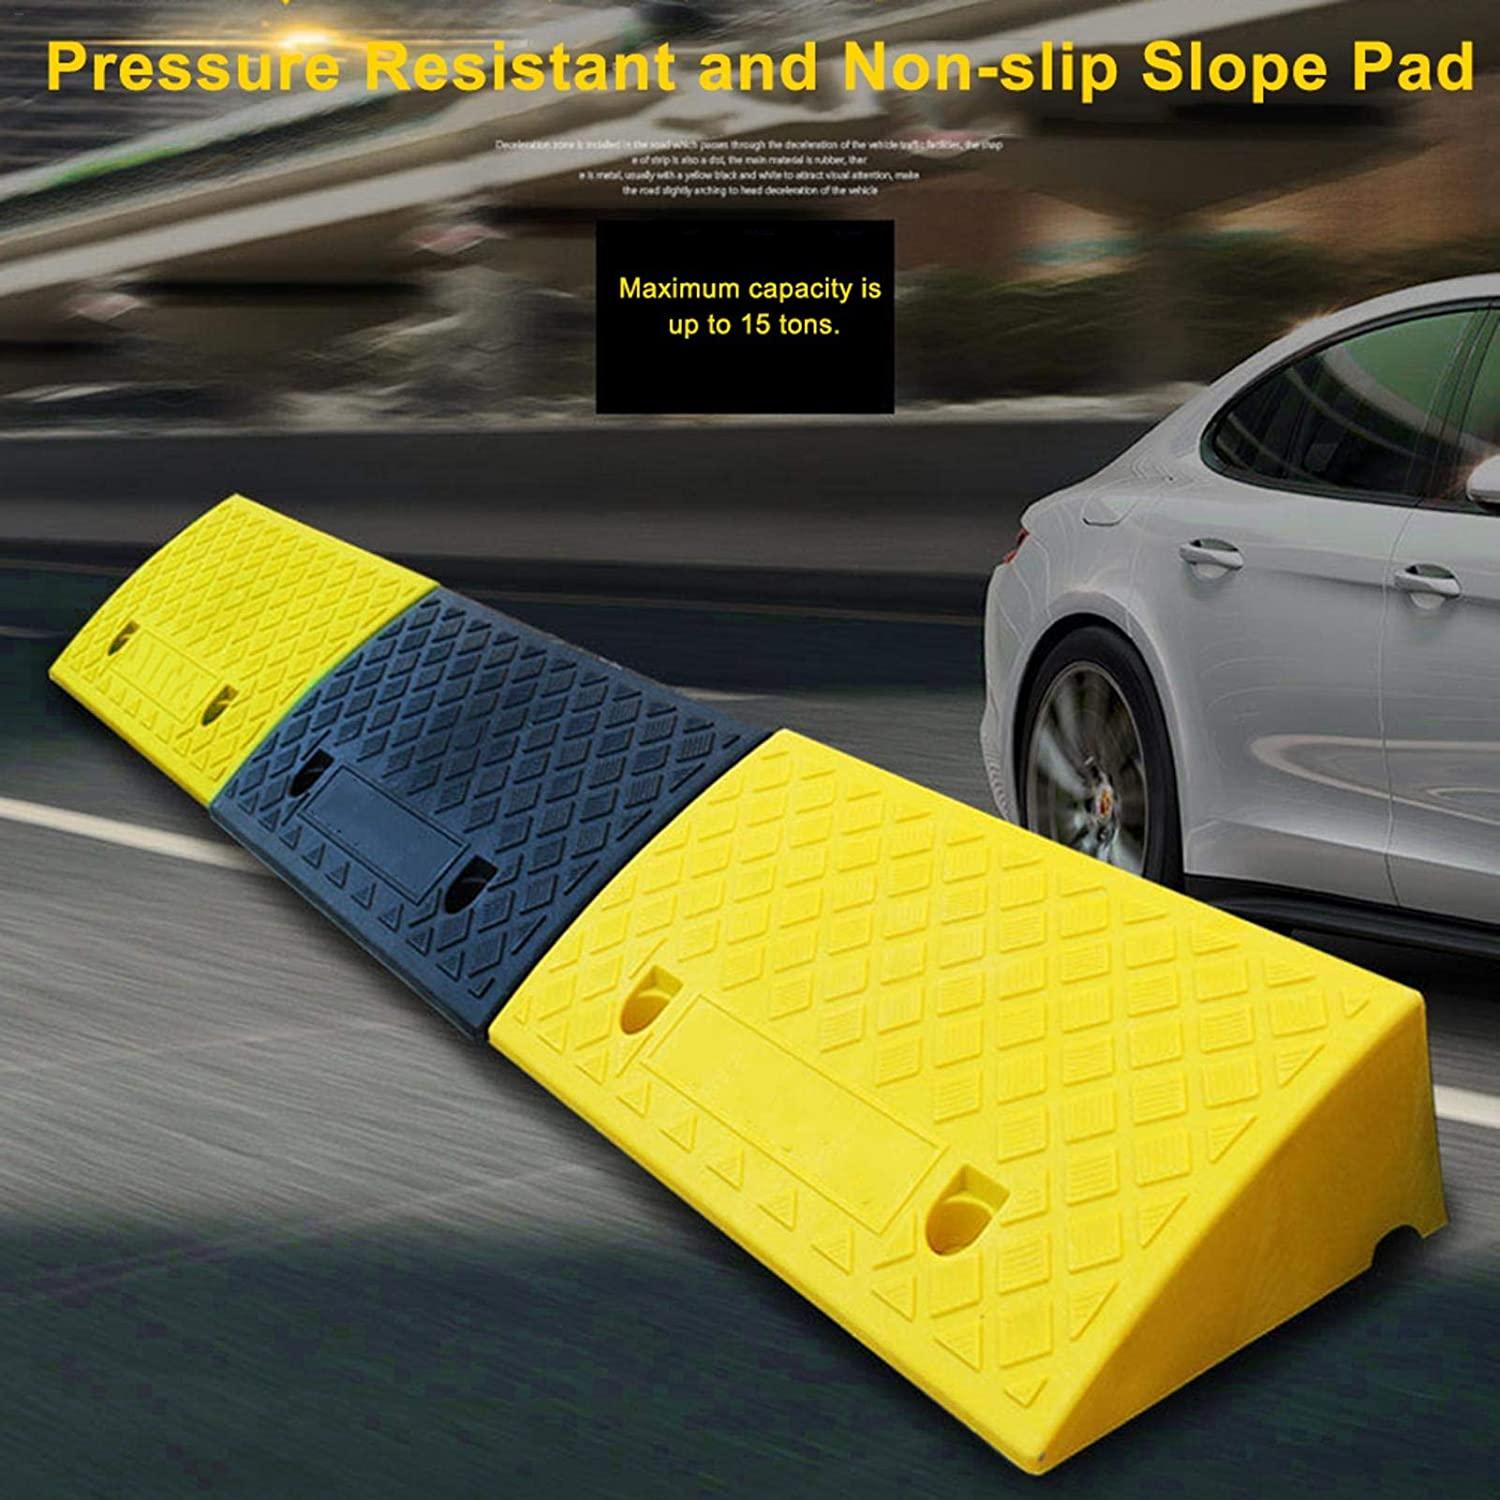 Plastic Curb Ramps Portable Lightweight,Heavy Duty Plastic Threshold Ramp Kit Set Loading Ramp for Car Bike Motorcycle Wheelchair